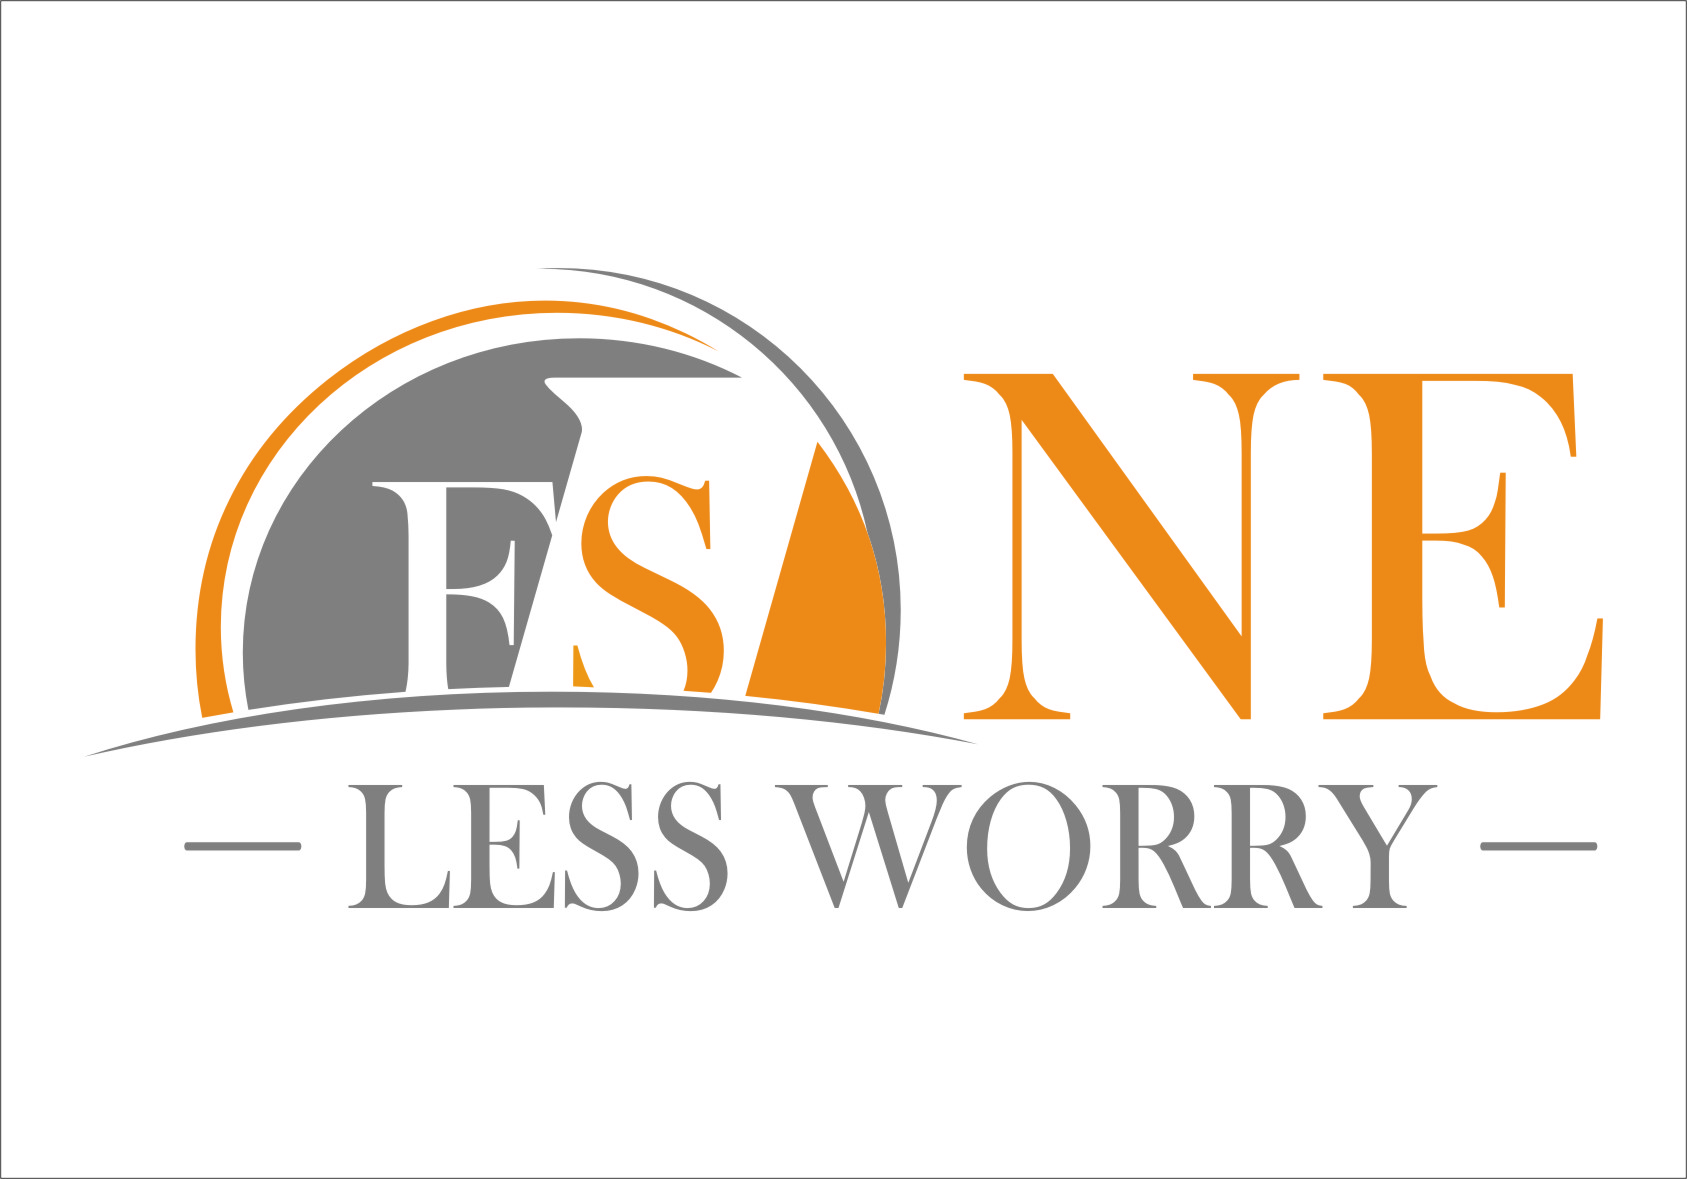 Logo Design by Ngepet_art - Entry No. 100 in the Logo Design Contest Creative Logo Design for FS - One Less Worry.